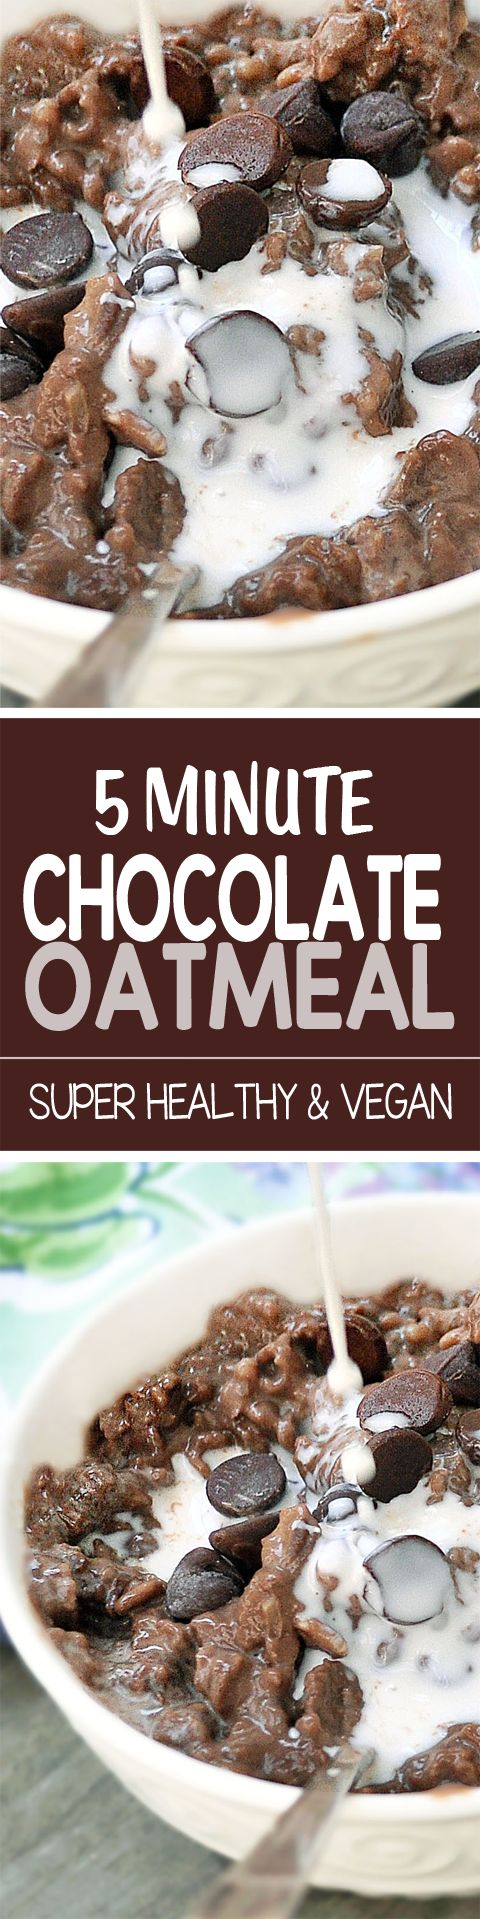 I make this chocolate oatmeal at least once a week for breakfast